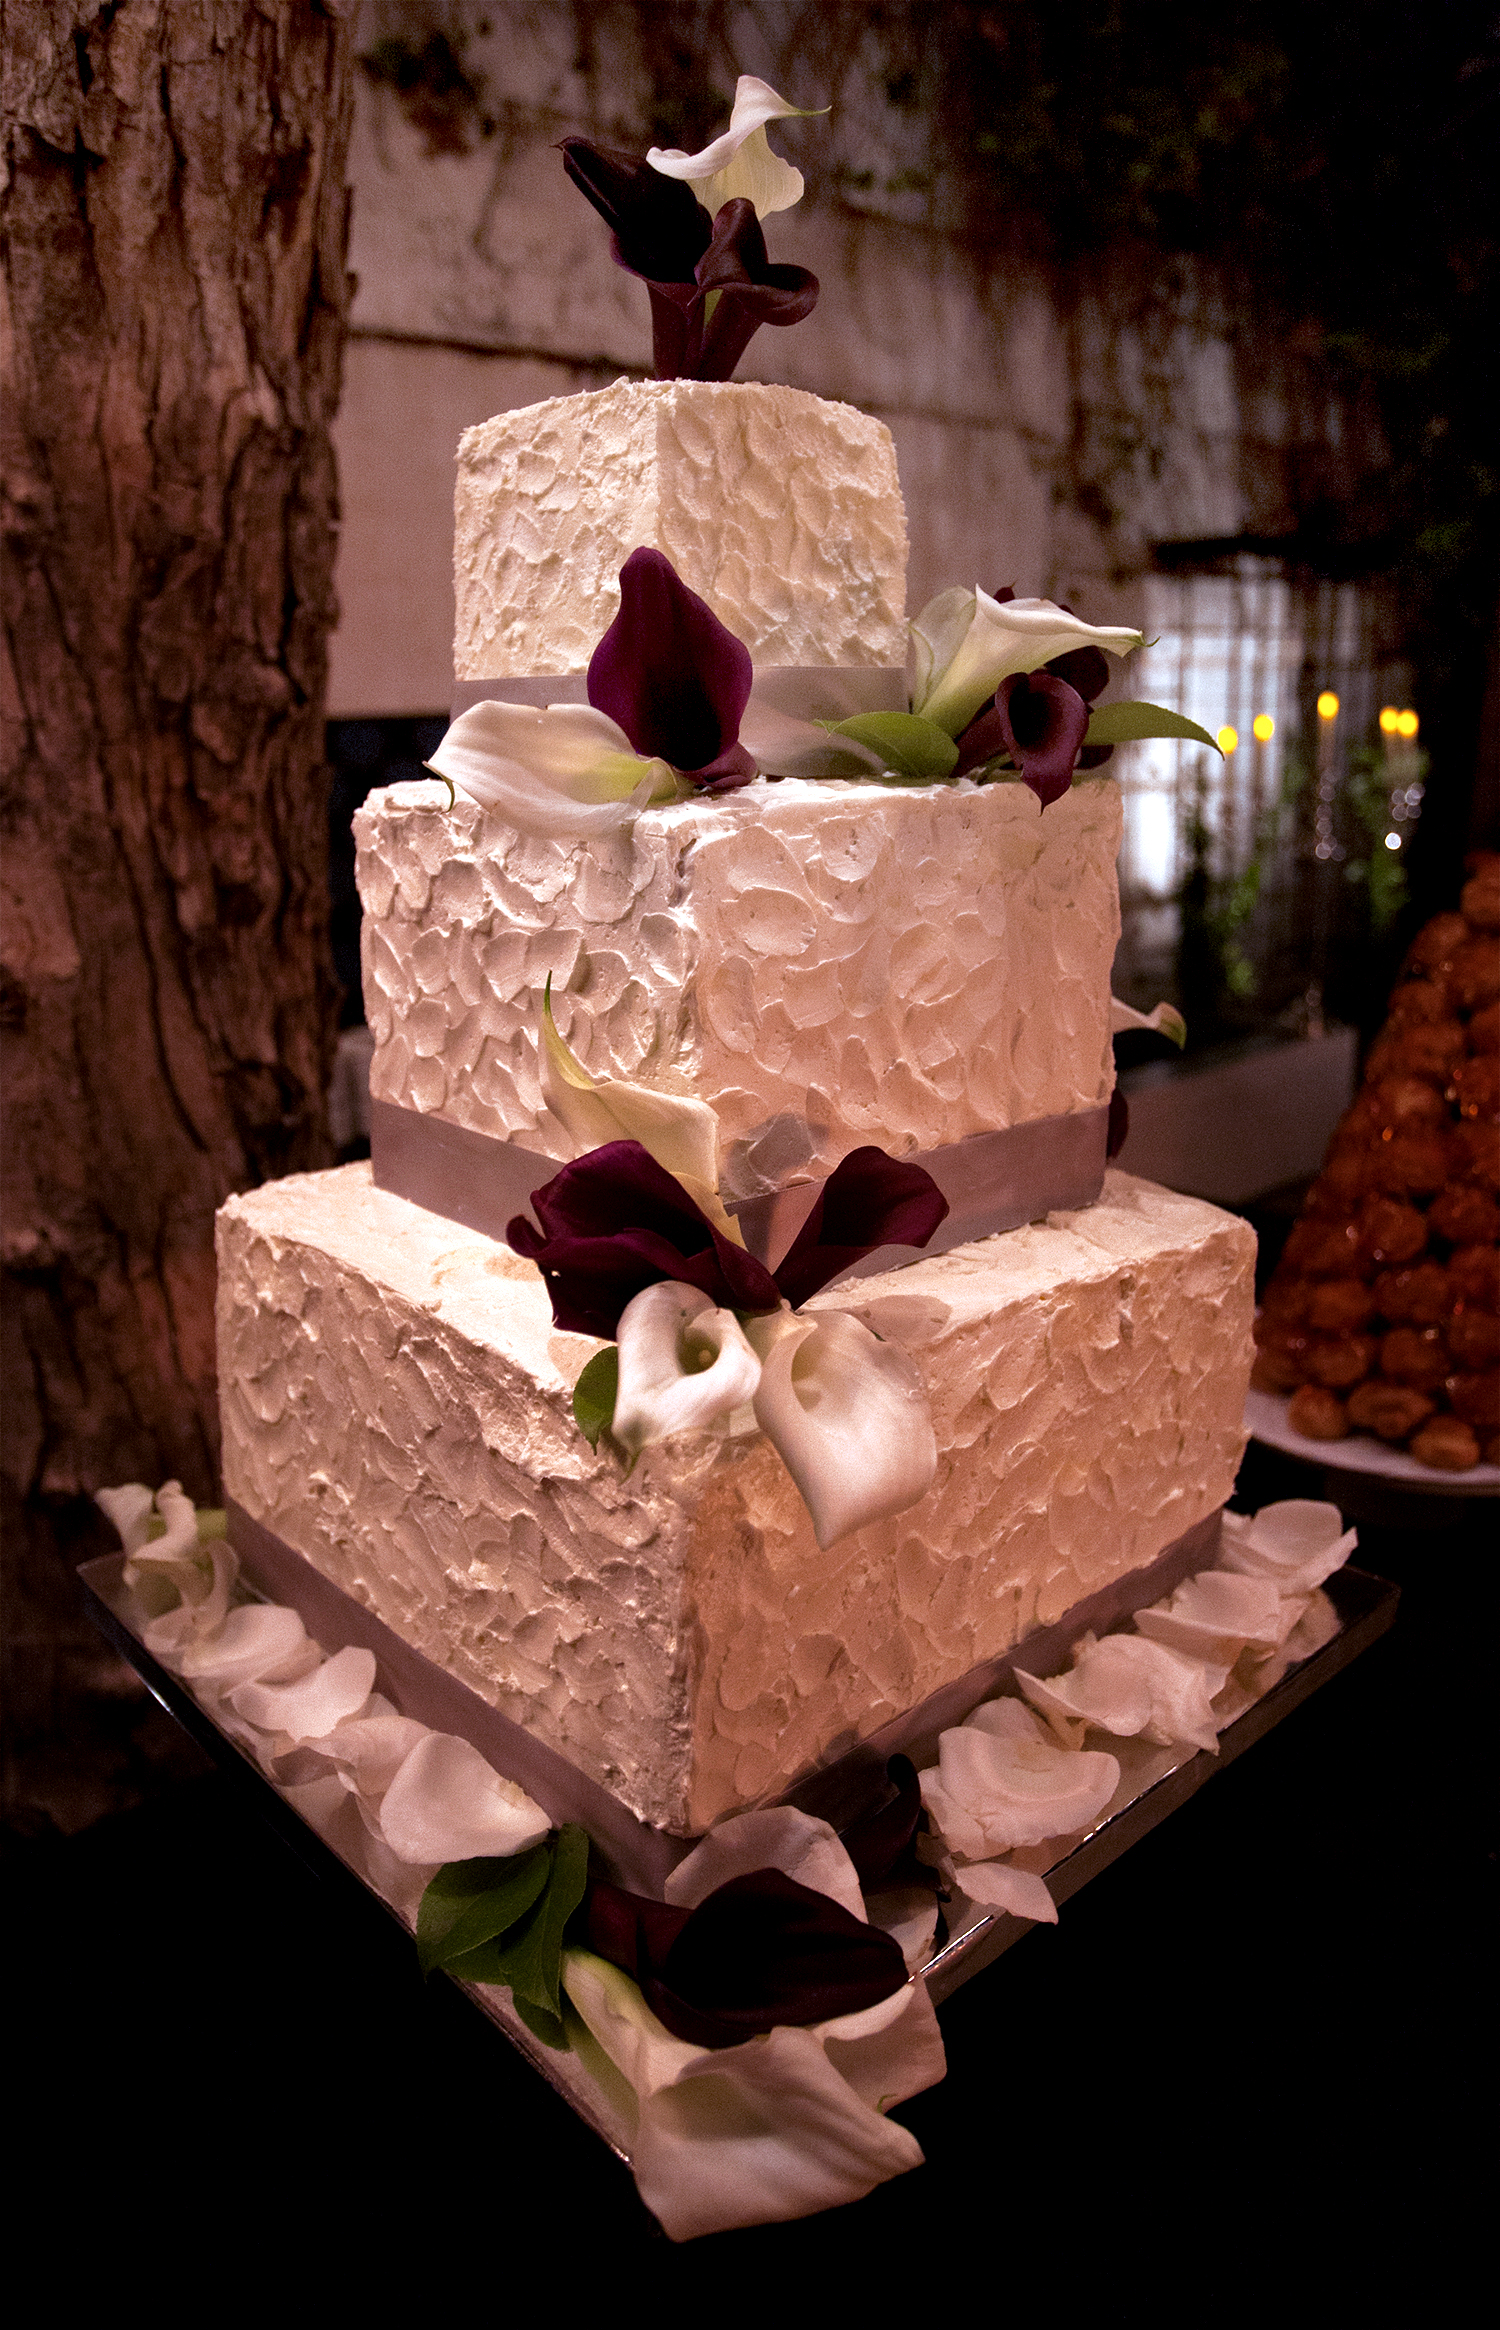 Gluten free wedding made by Love Catering's pastry chef